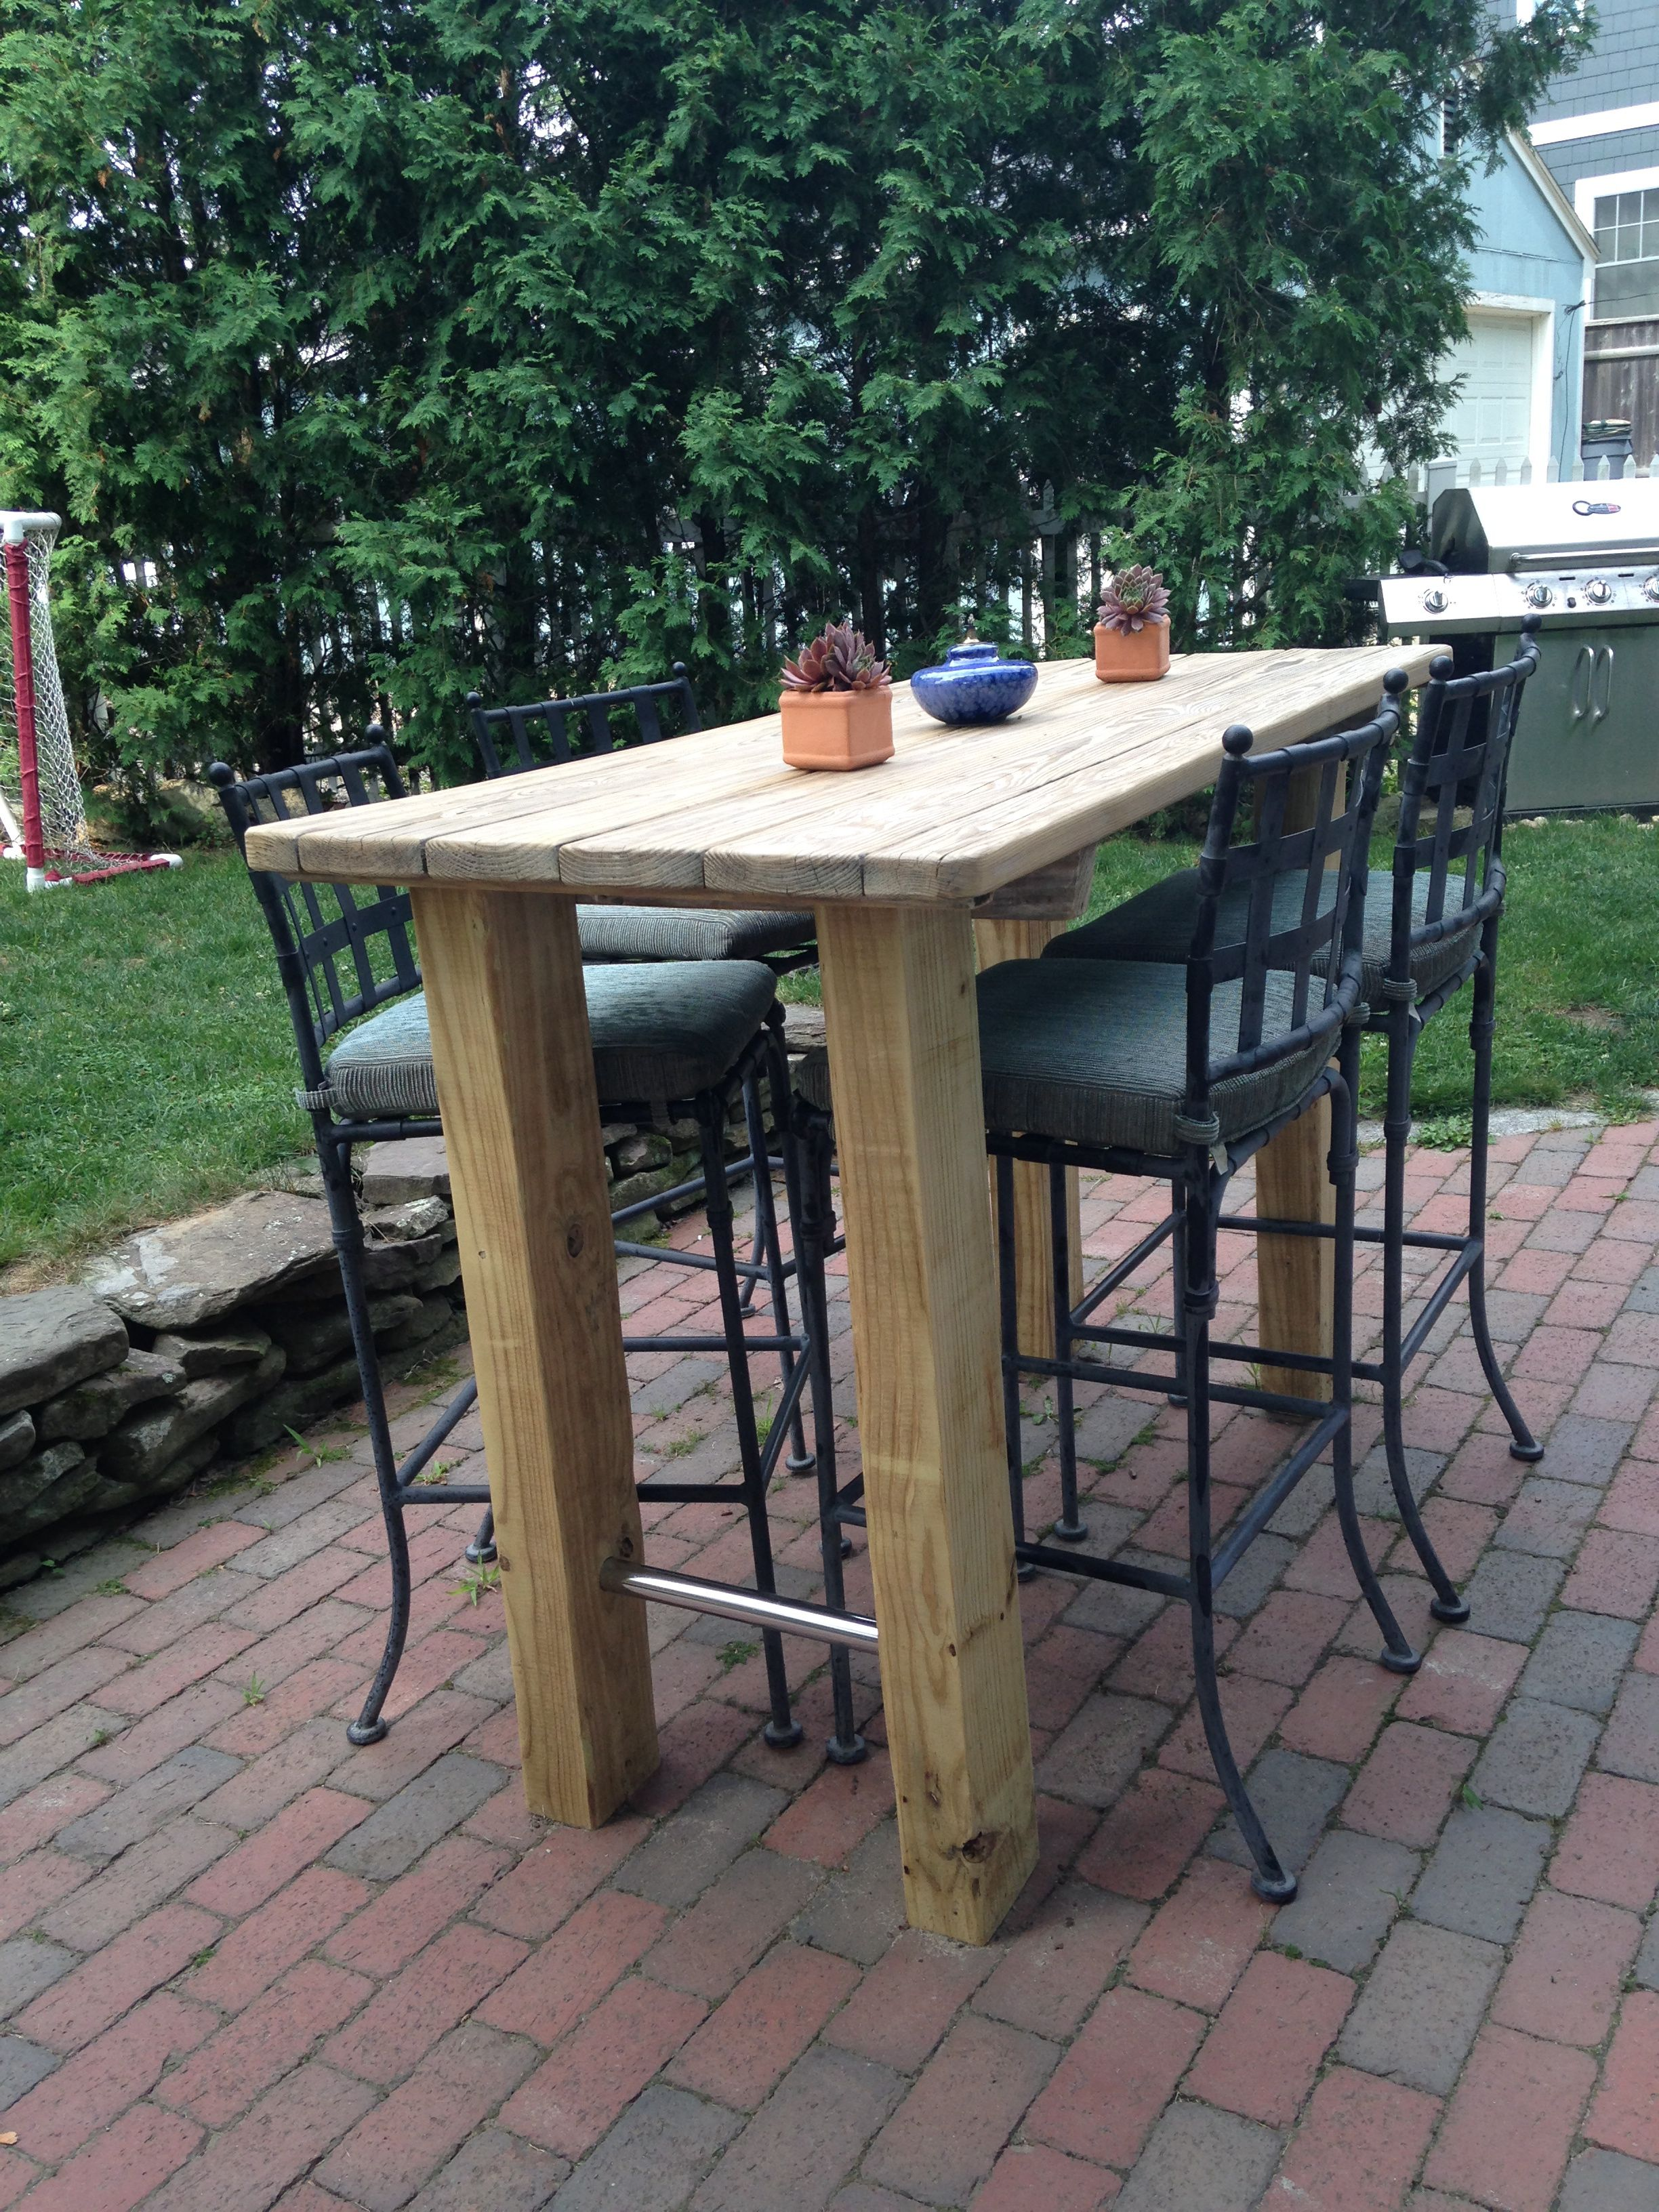 We wanted a bar height table so found an old picnic table we wanted a bar height table so found an old picnic table refinished it watchthetrailerfo